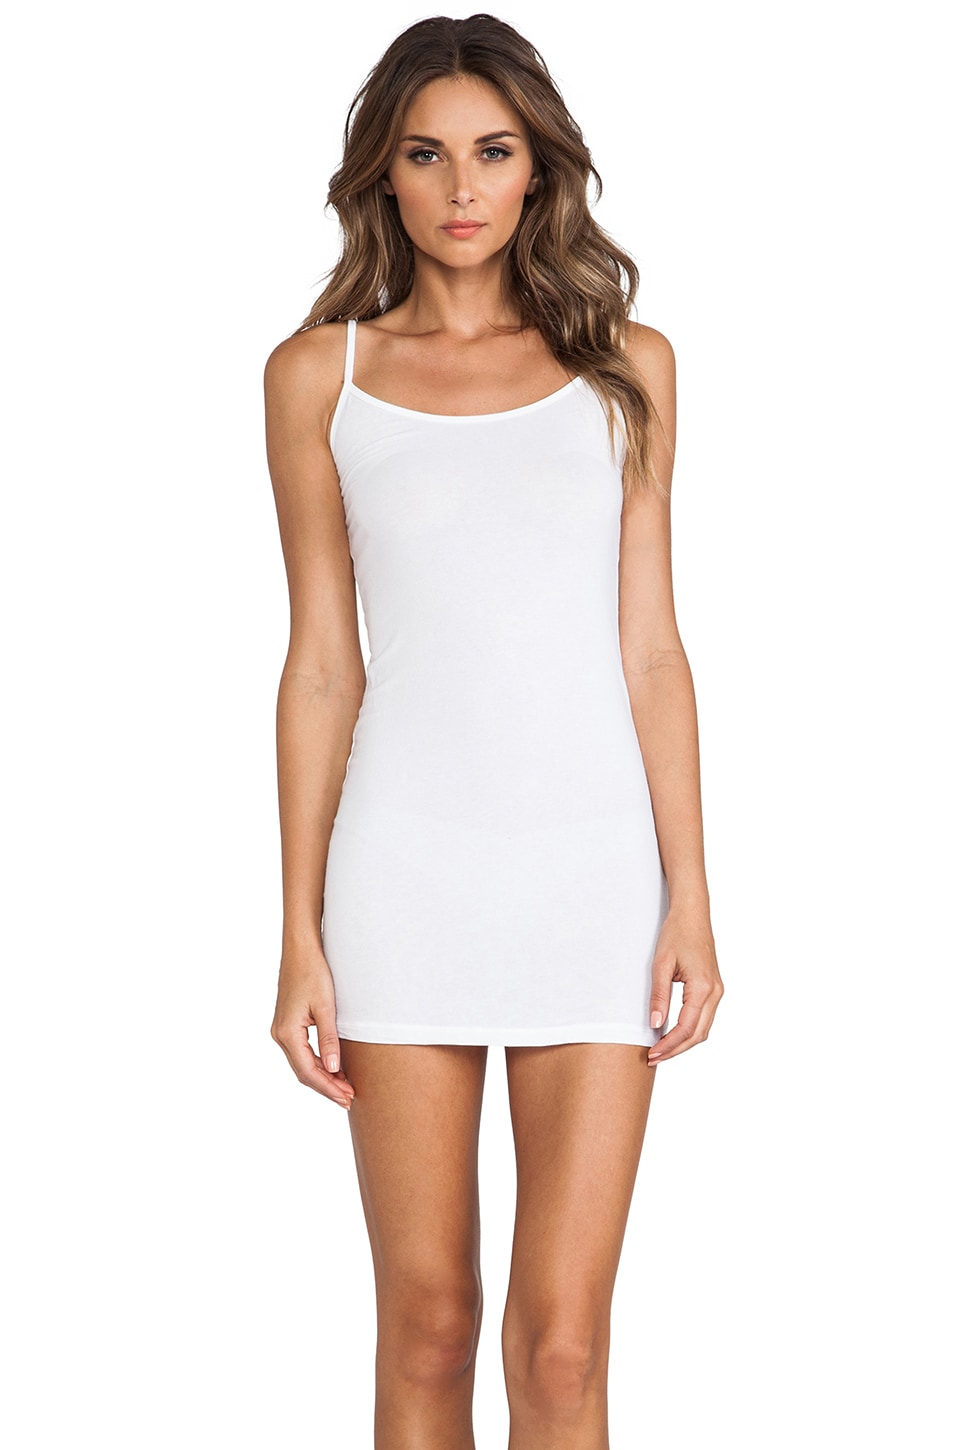 Splendid Layers Cami Dress in White